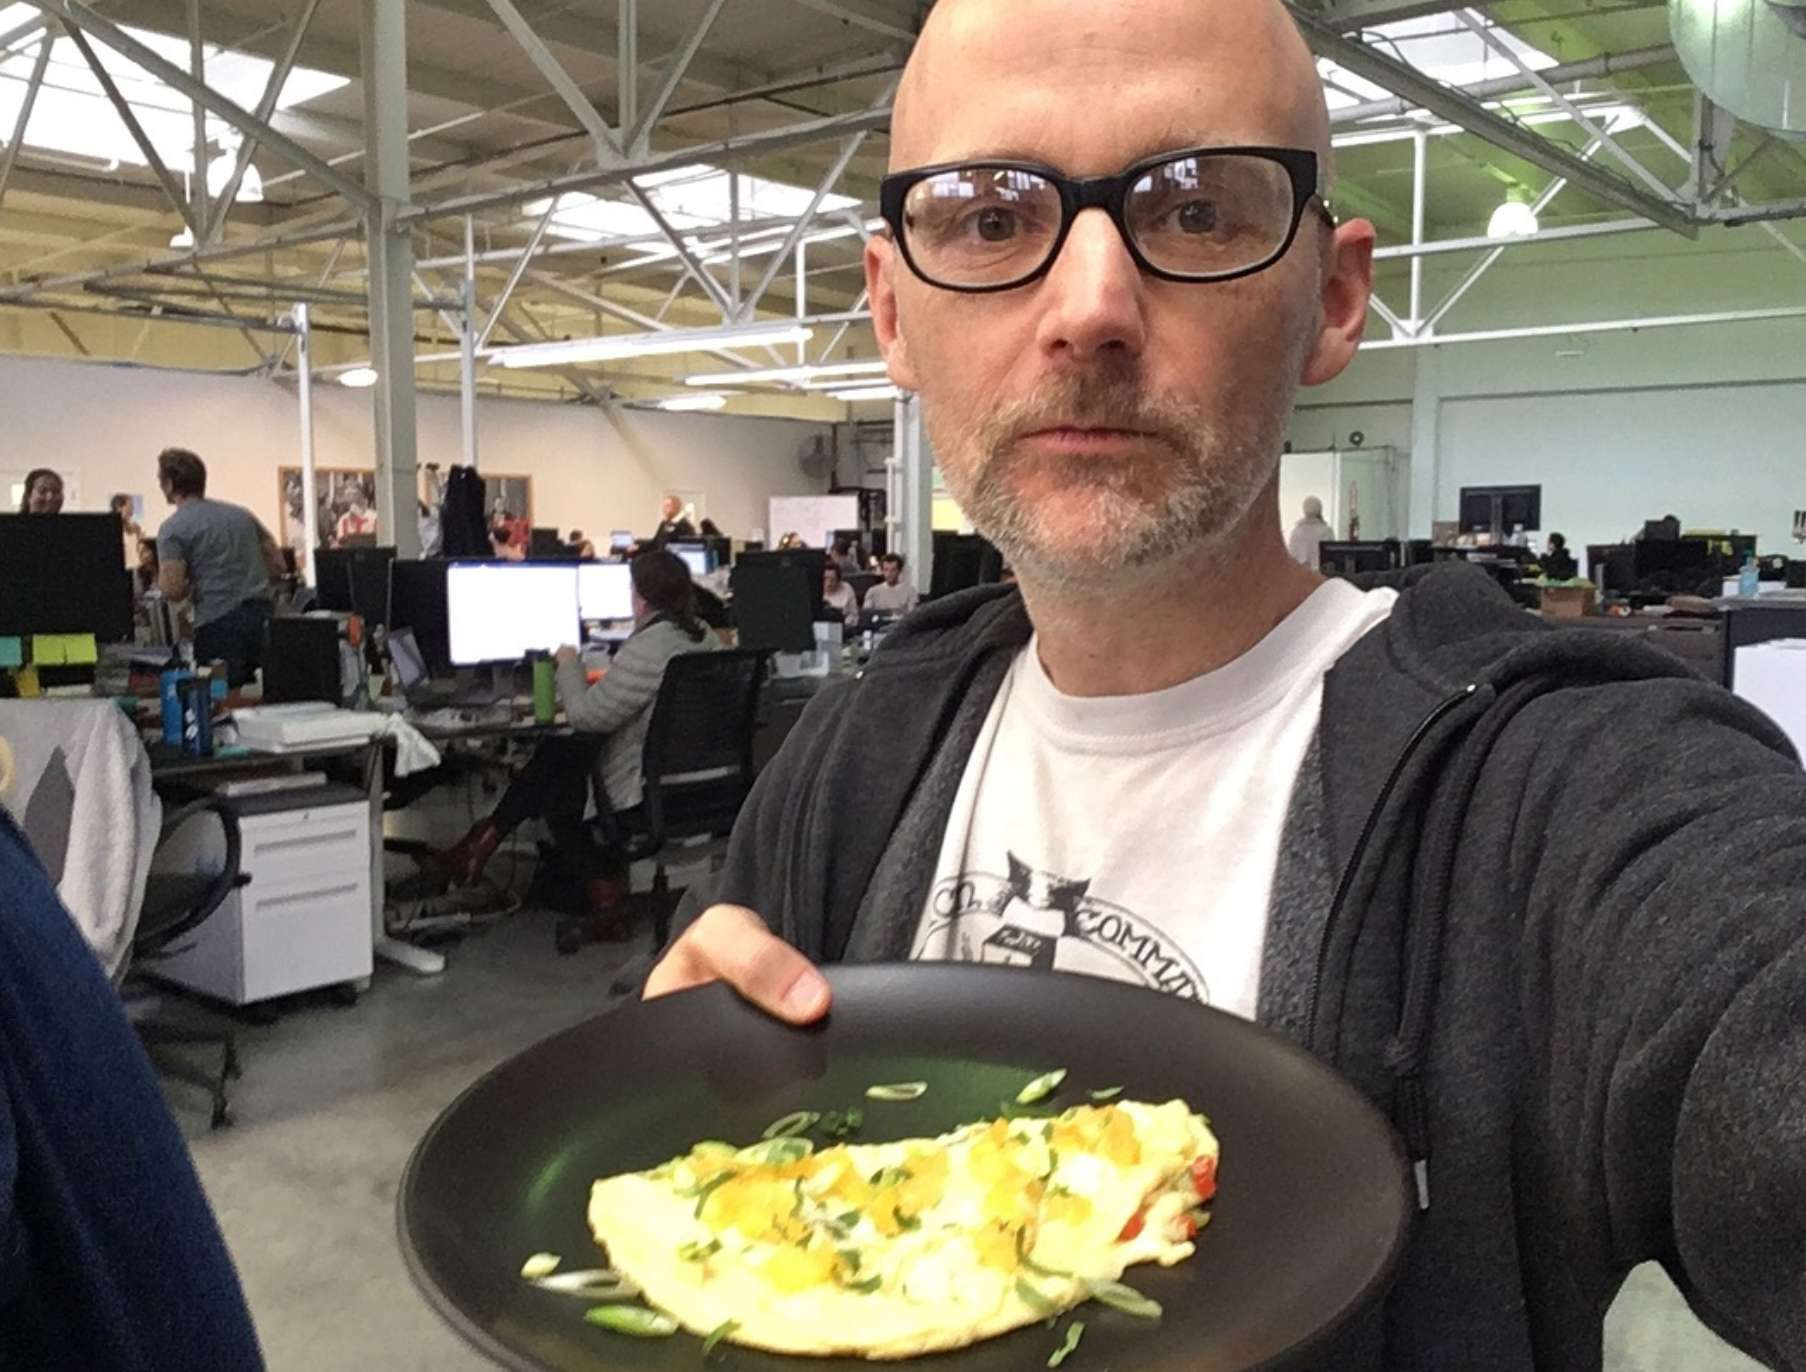 Vegan celebrity Moby holding a plate of vegan JUST Egg